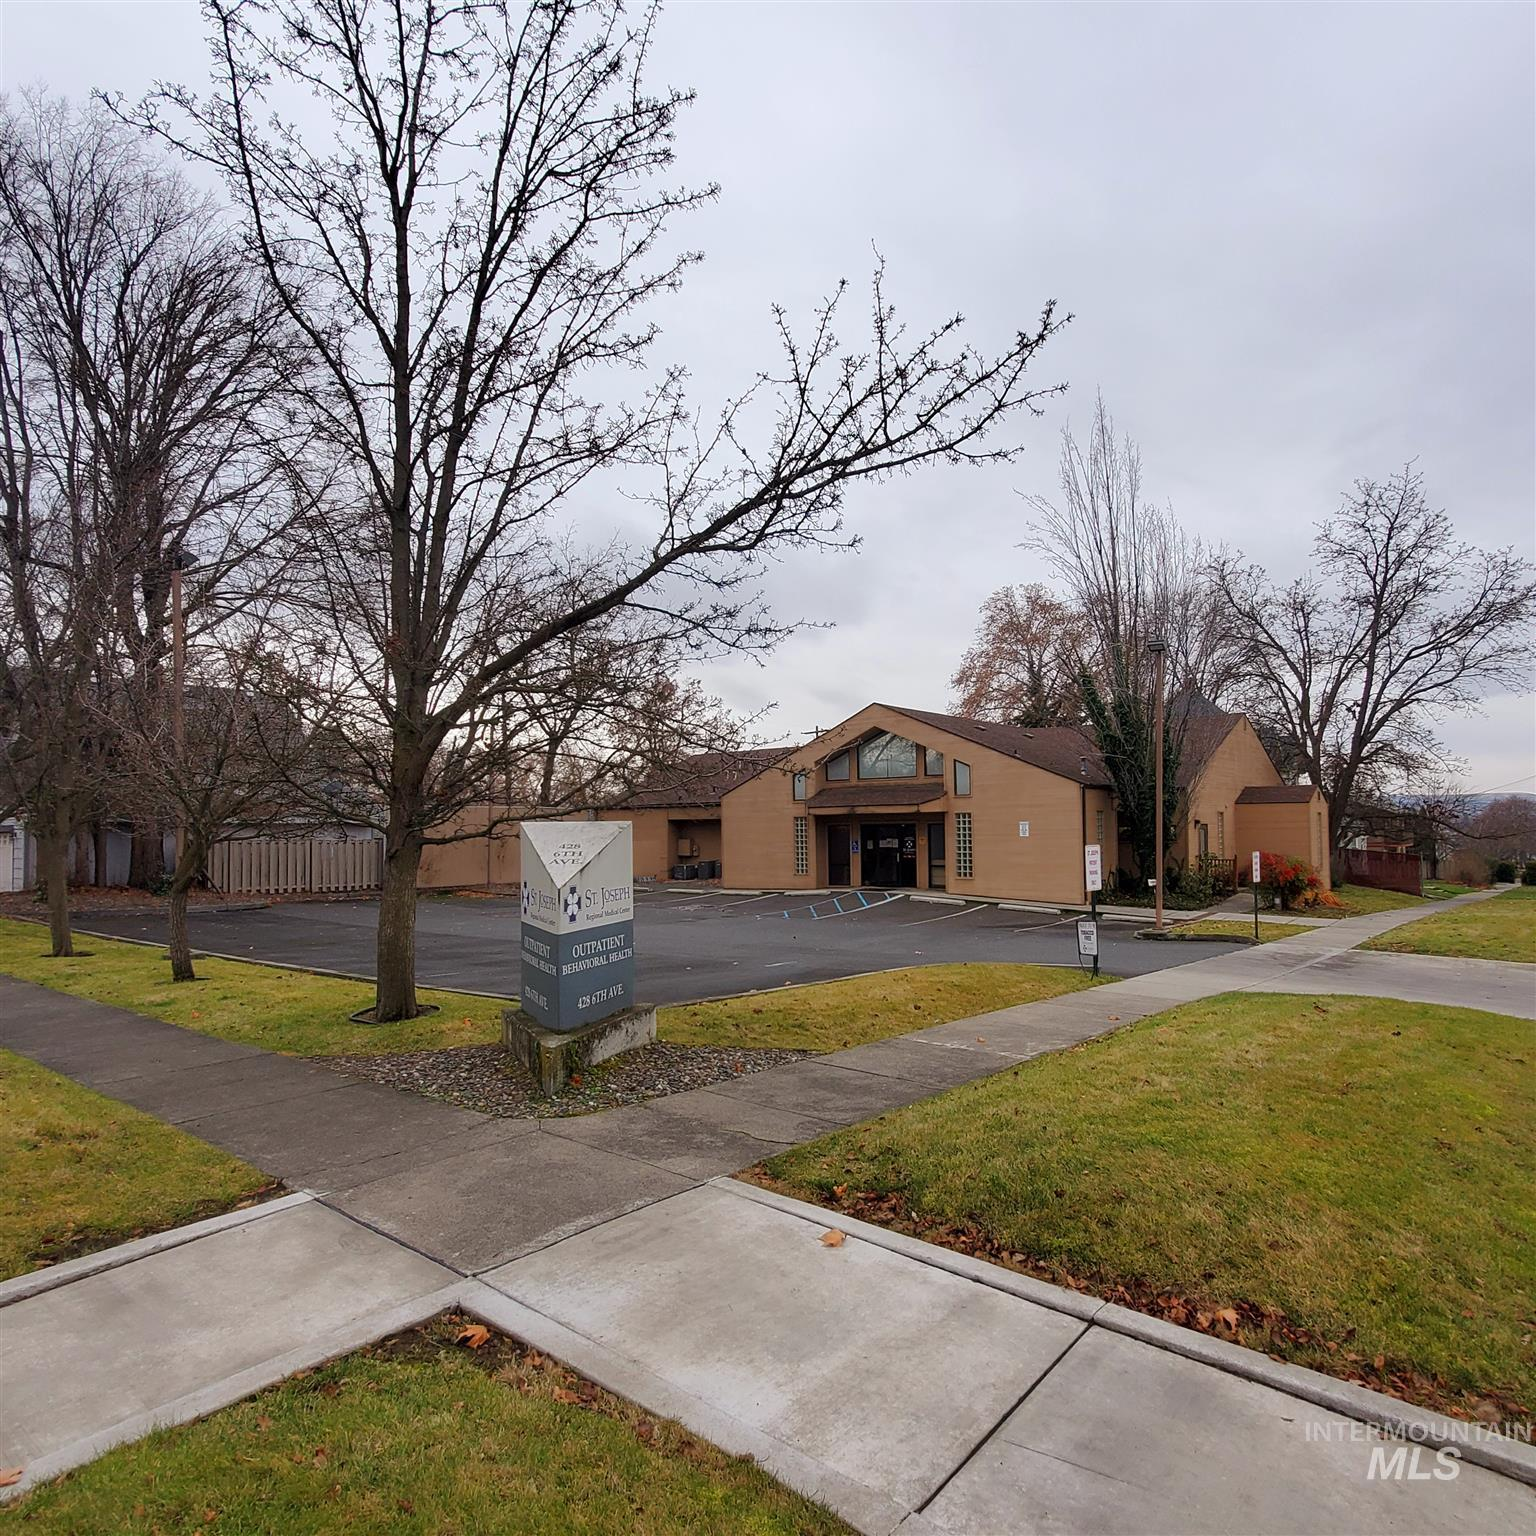 428 6th Ave, Lewiston, Idaho 83501, Business/Commercial For Sale, Price $699,900, 98791307